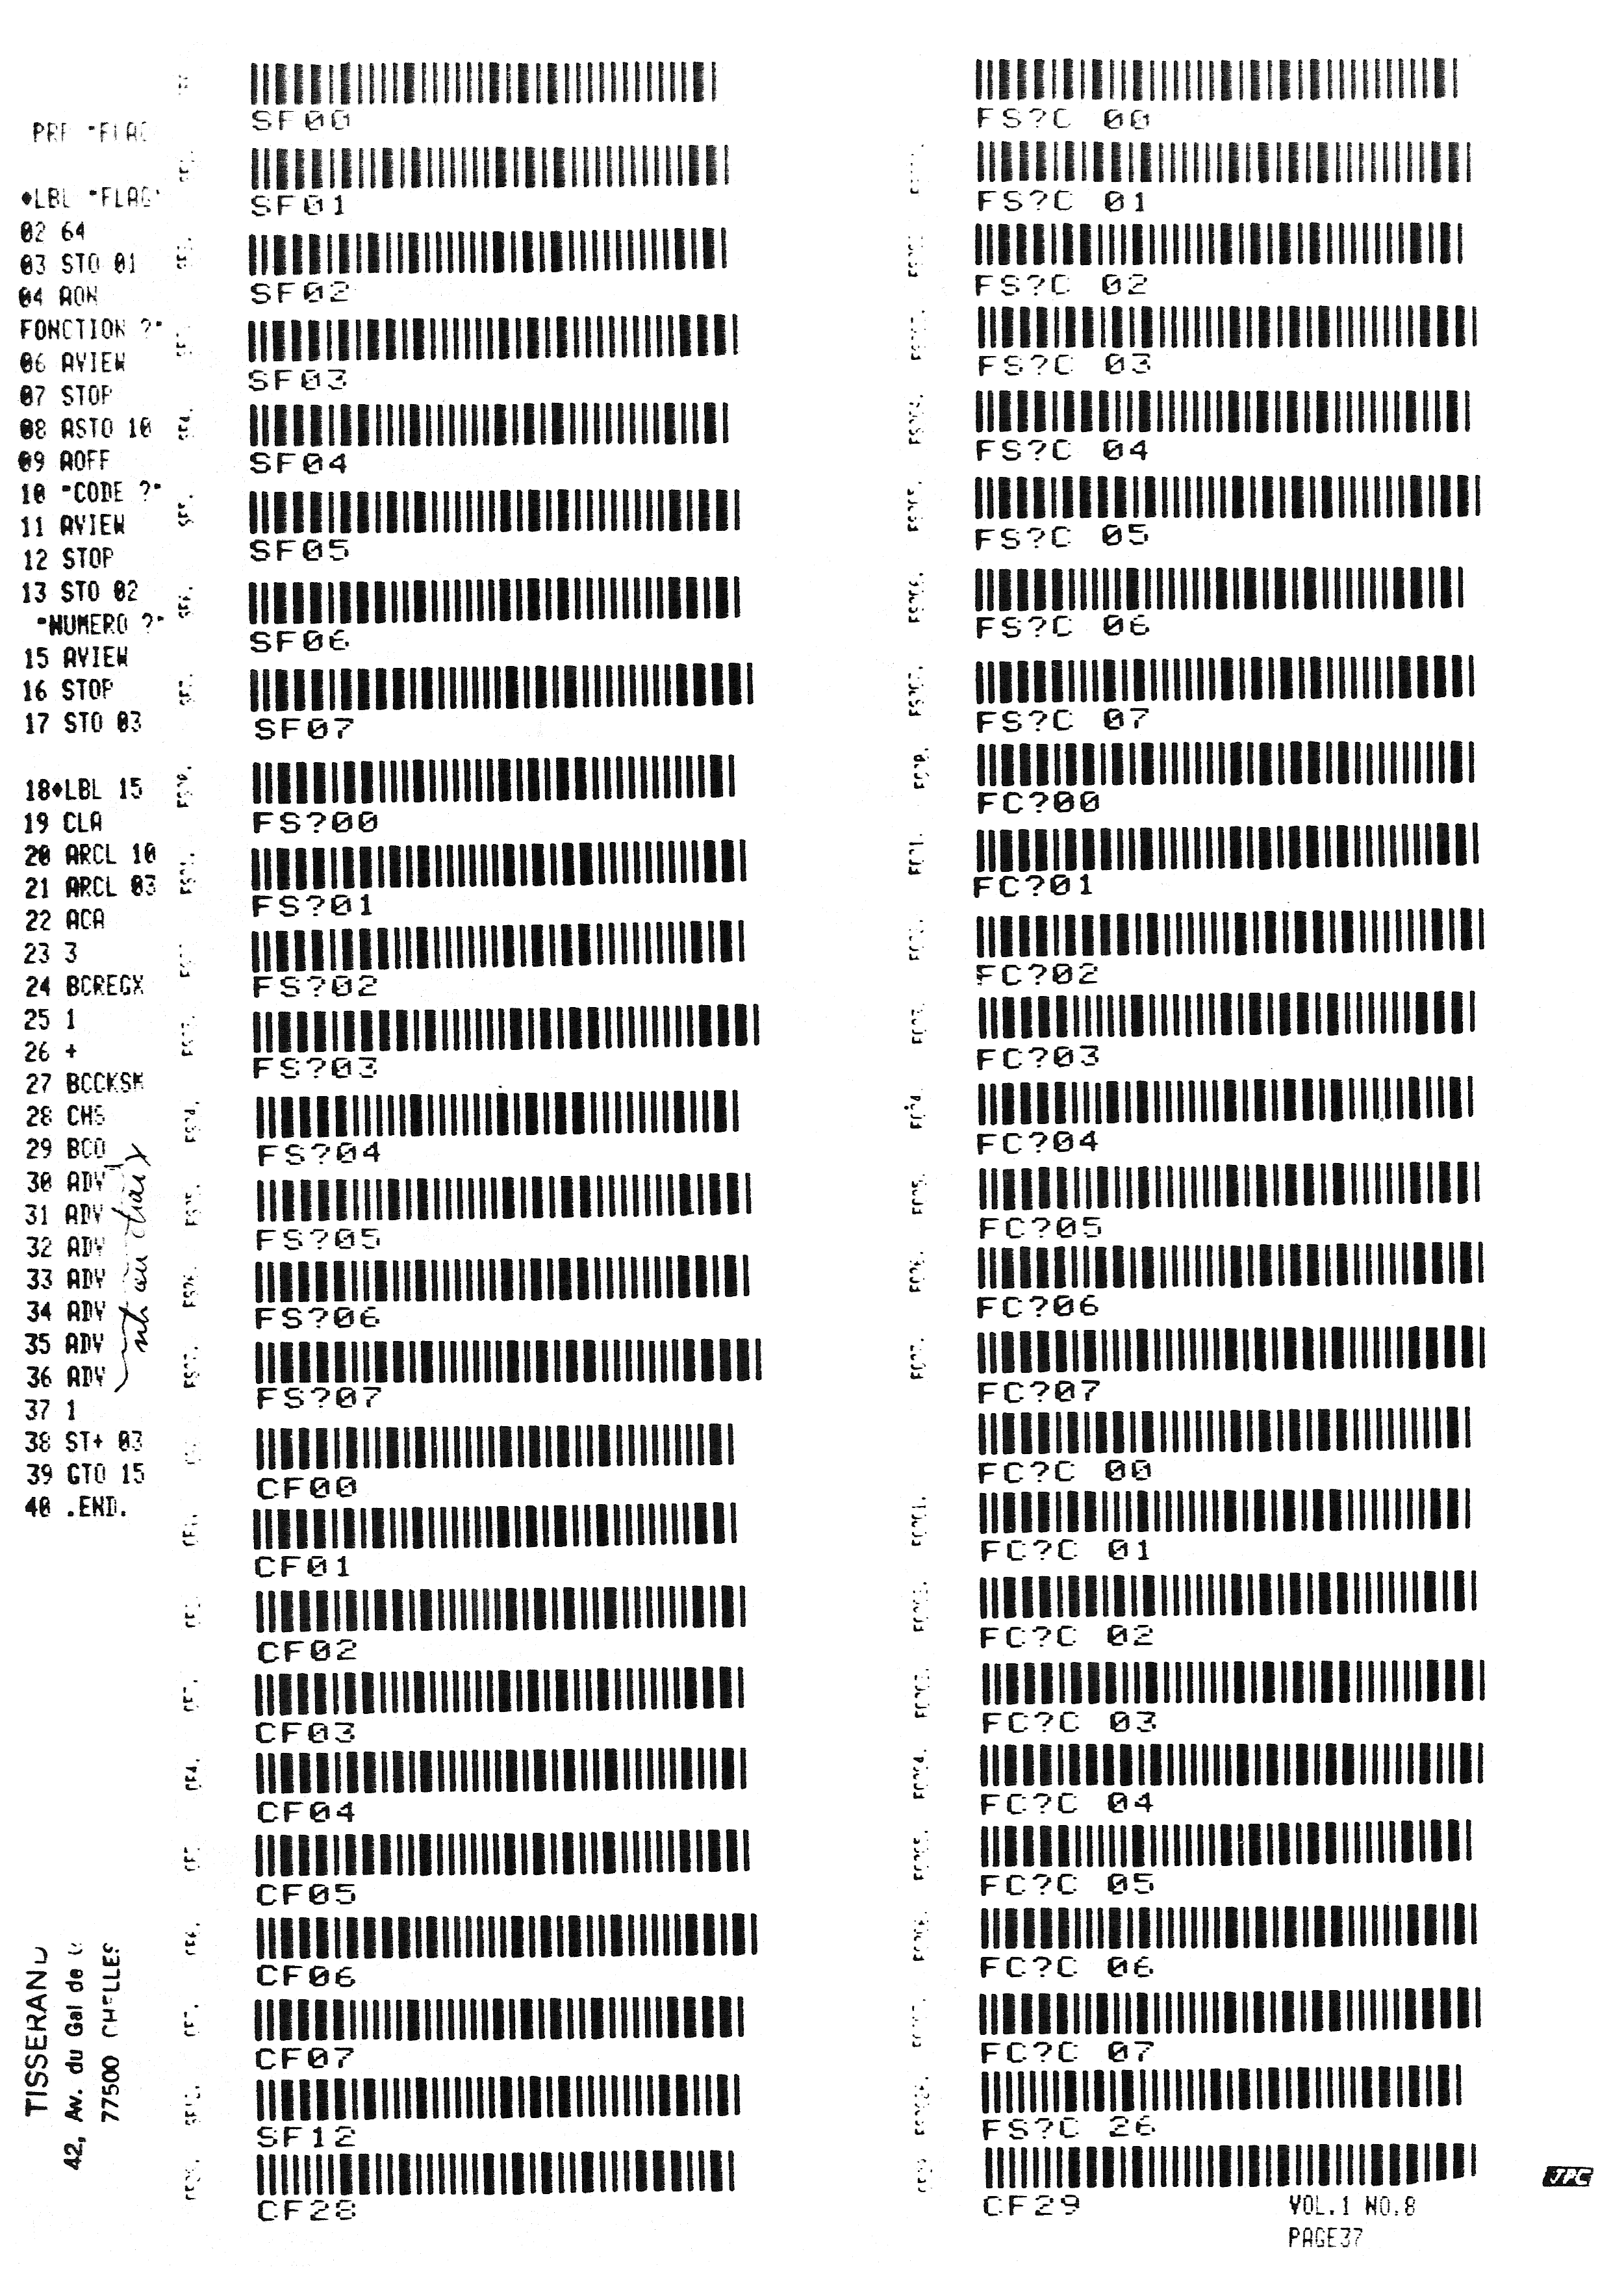 Jp-8-page-37-1000